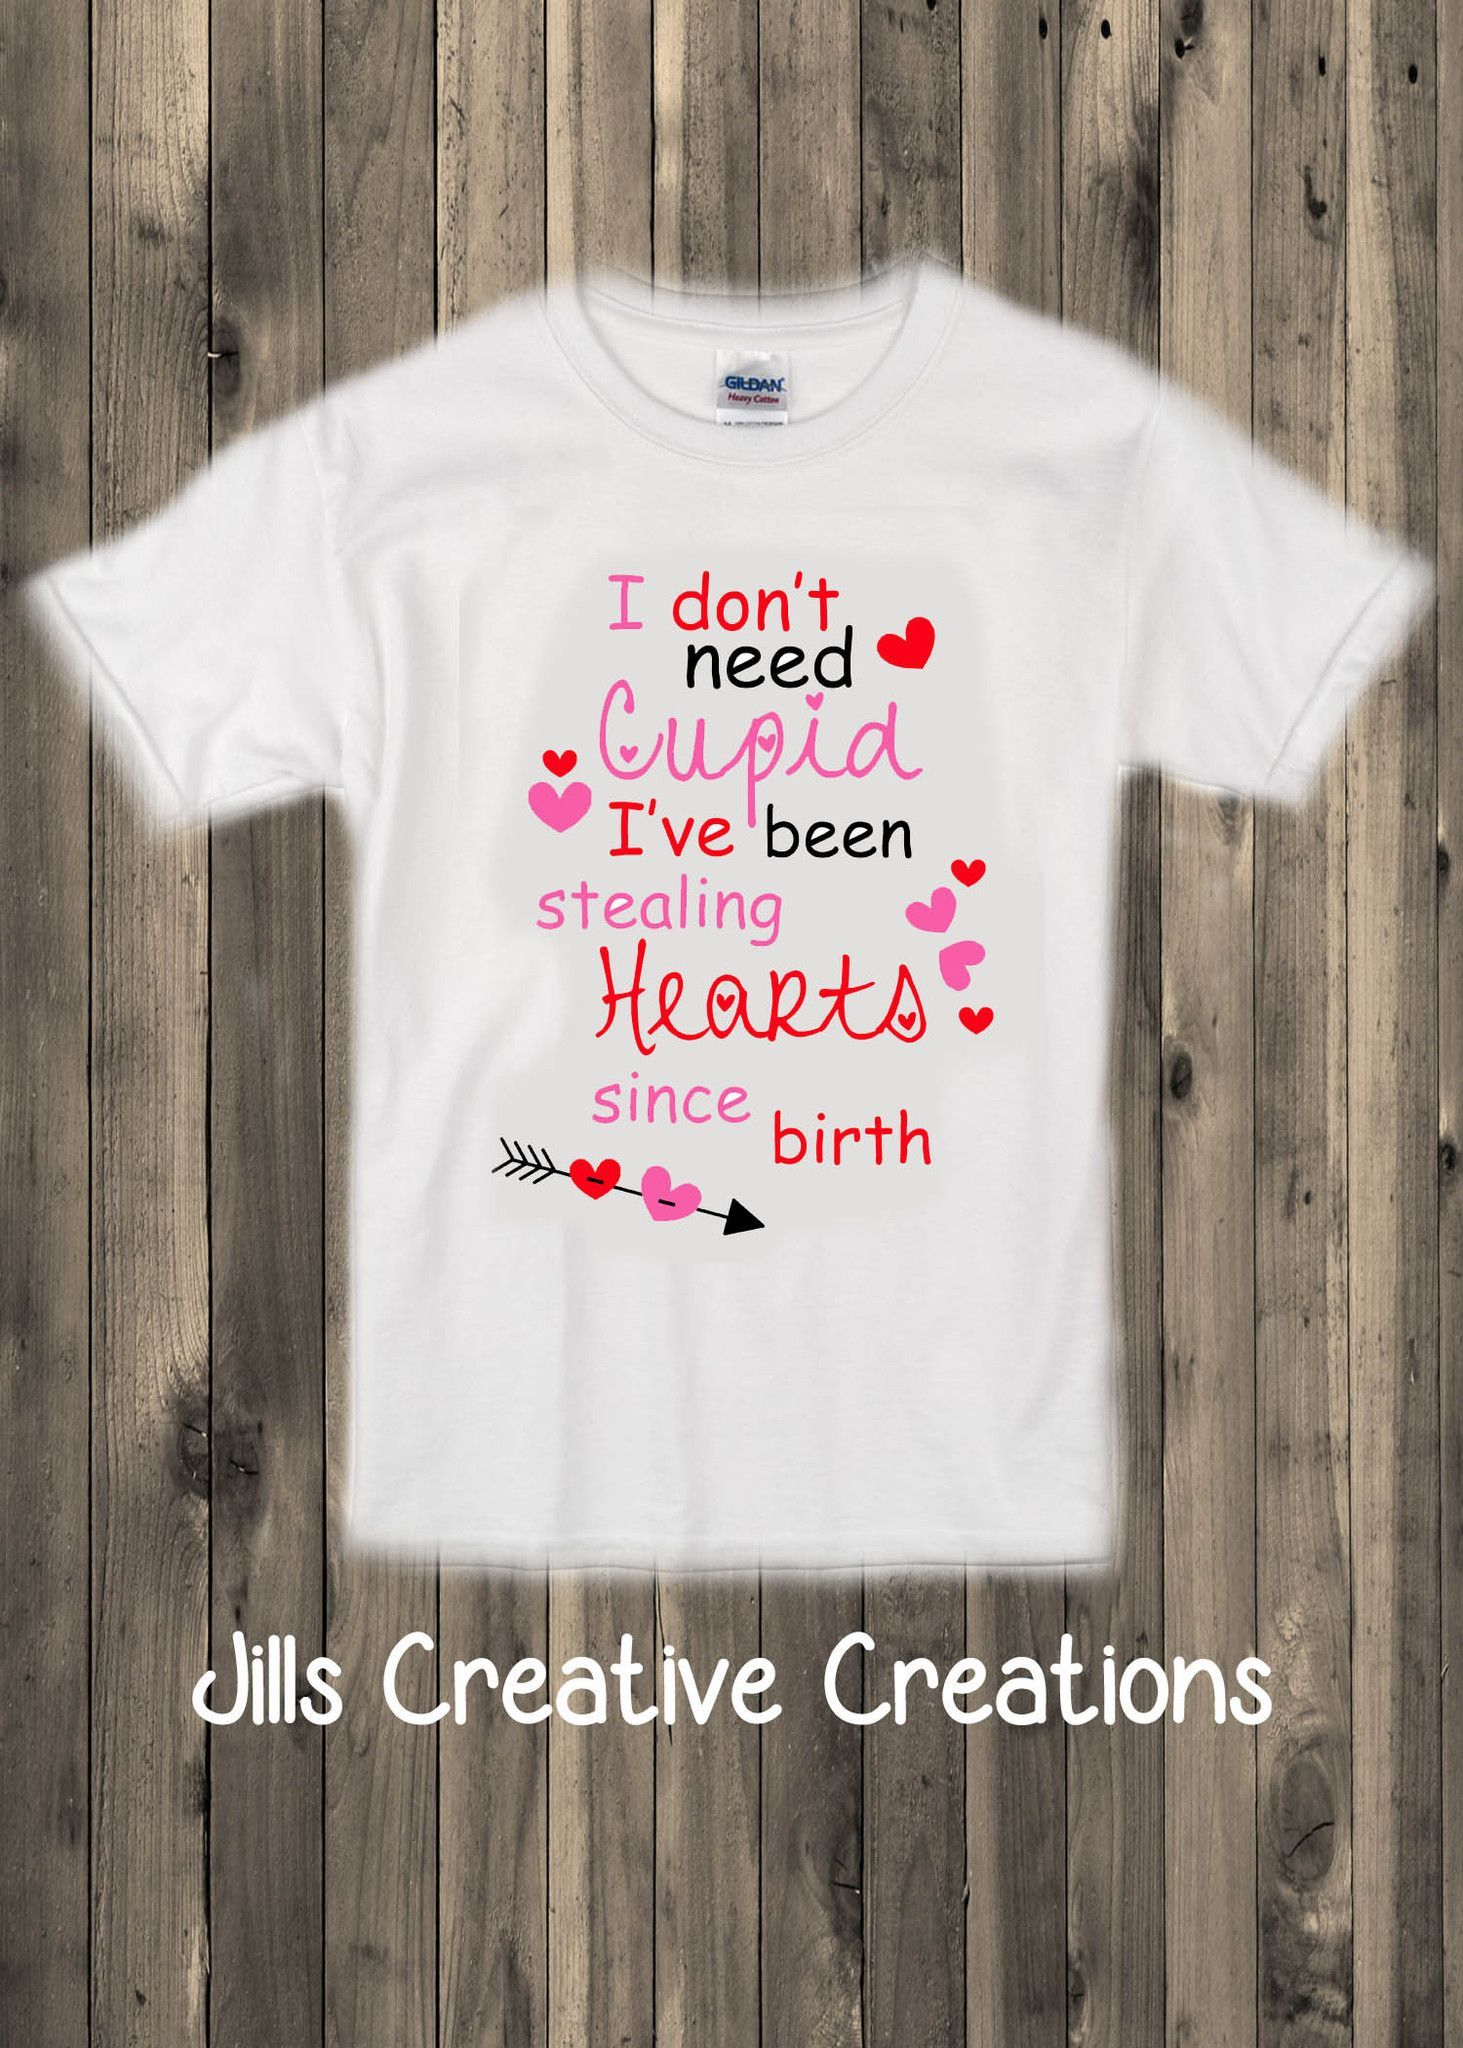 Bump Beyond Designs Who Needs Cupid When Youre This Cute Kids Valentines Day Shirt